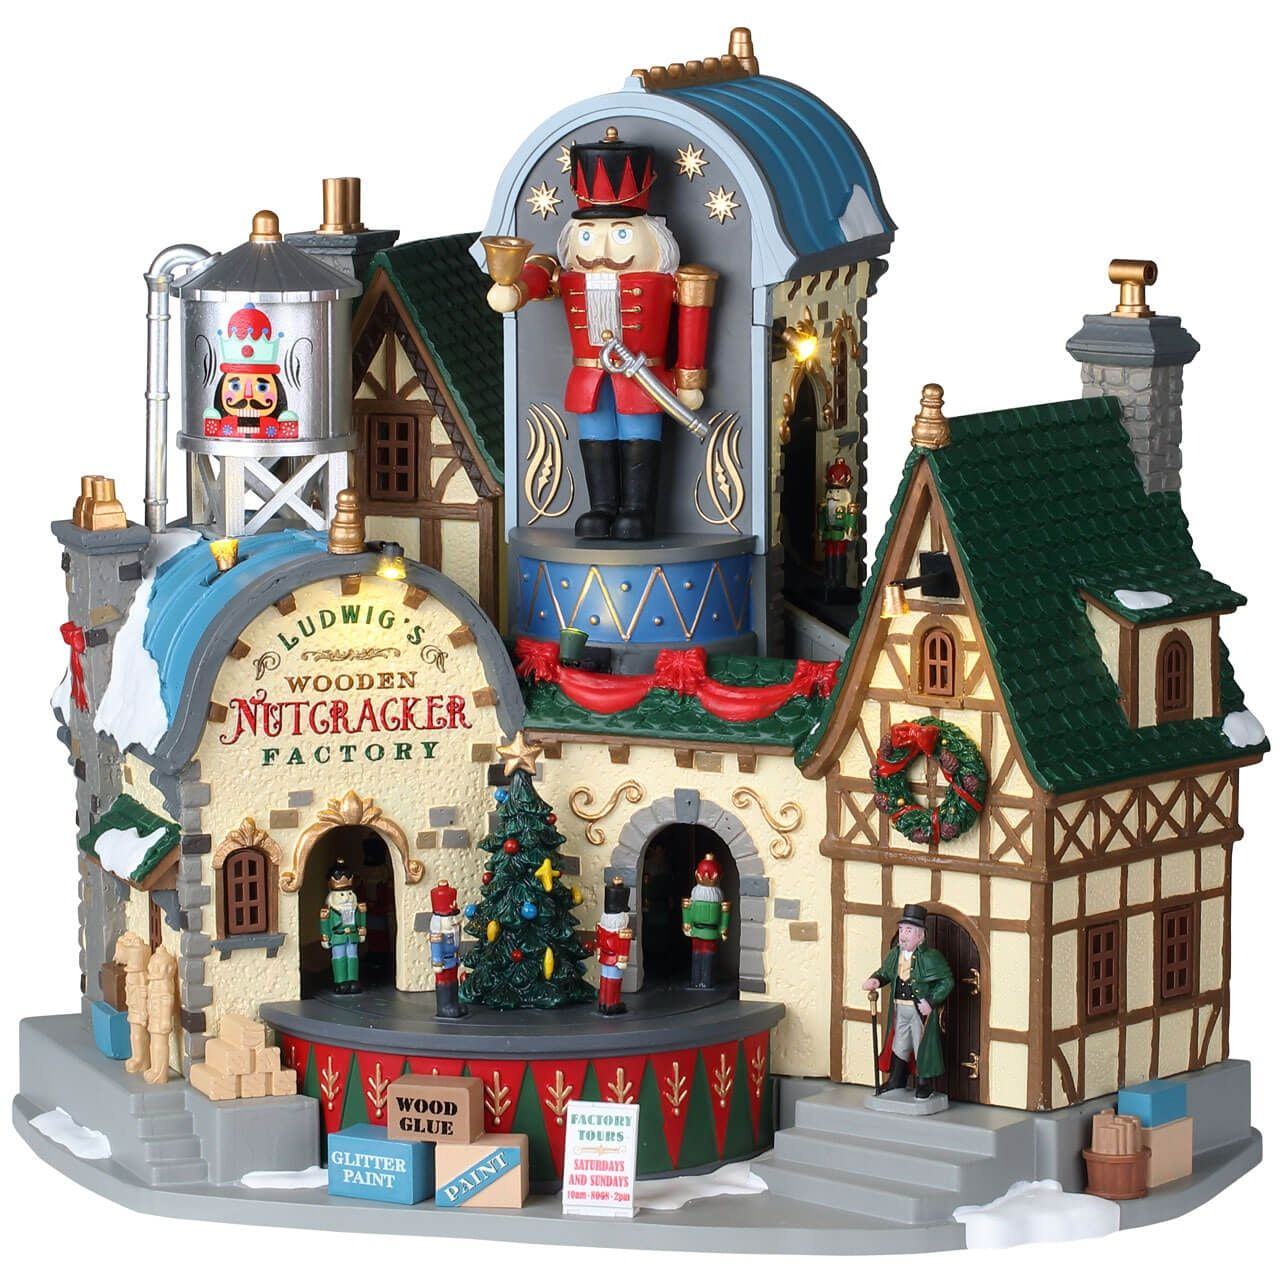 Ludwig's Wooden Nutcracker Factory Lemax christmas